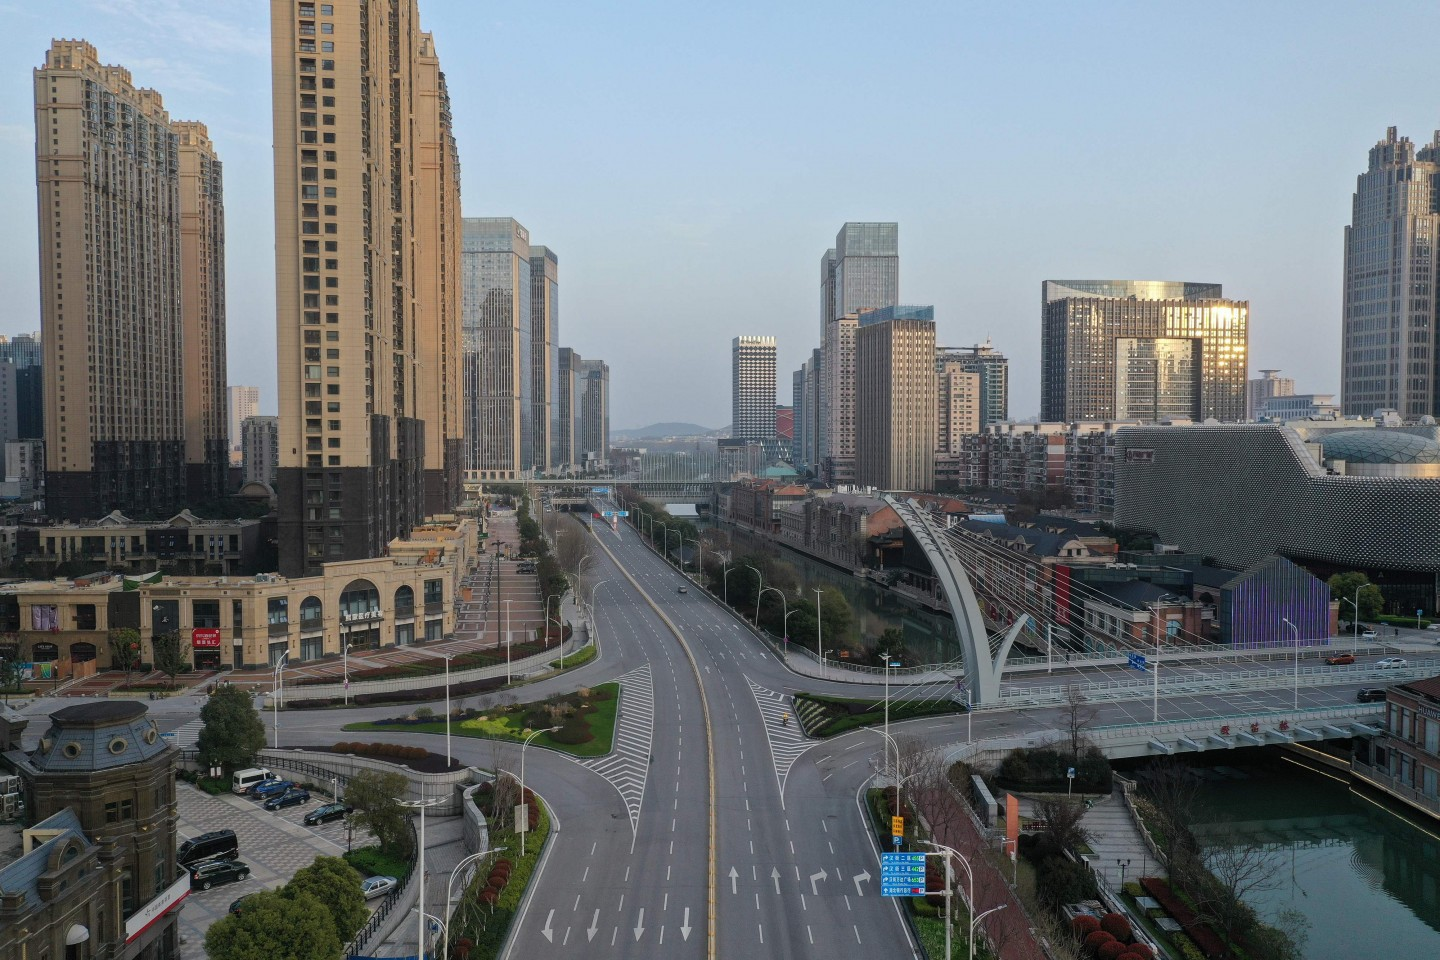 This aerial photo taken on 10 March 2020 shows an empty street in Wuhan in China's central Hubei province. (STR/AFP)